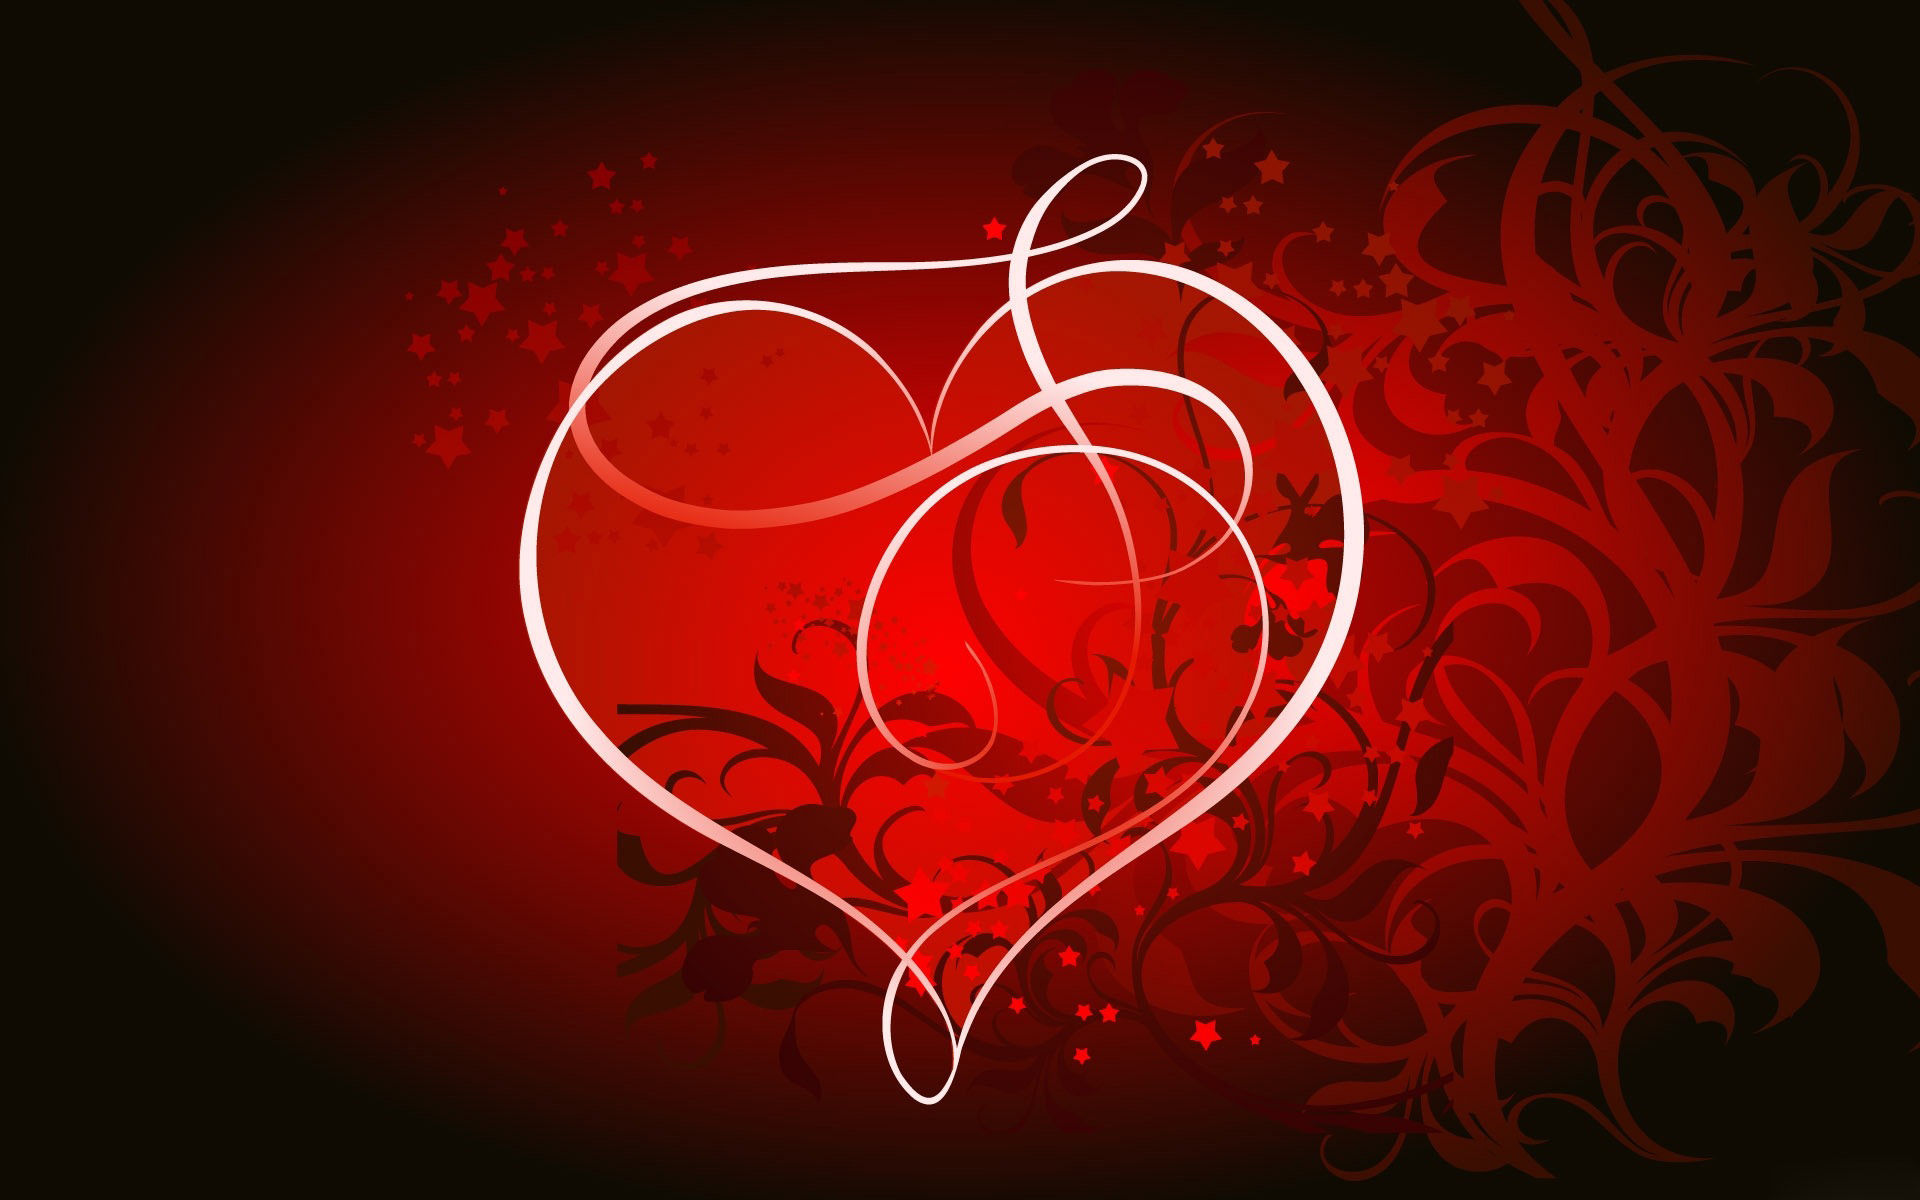 10 best valentine 39 s day pc wallpapers to make the mood - Wallpaper stills ...